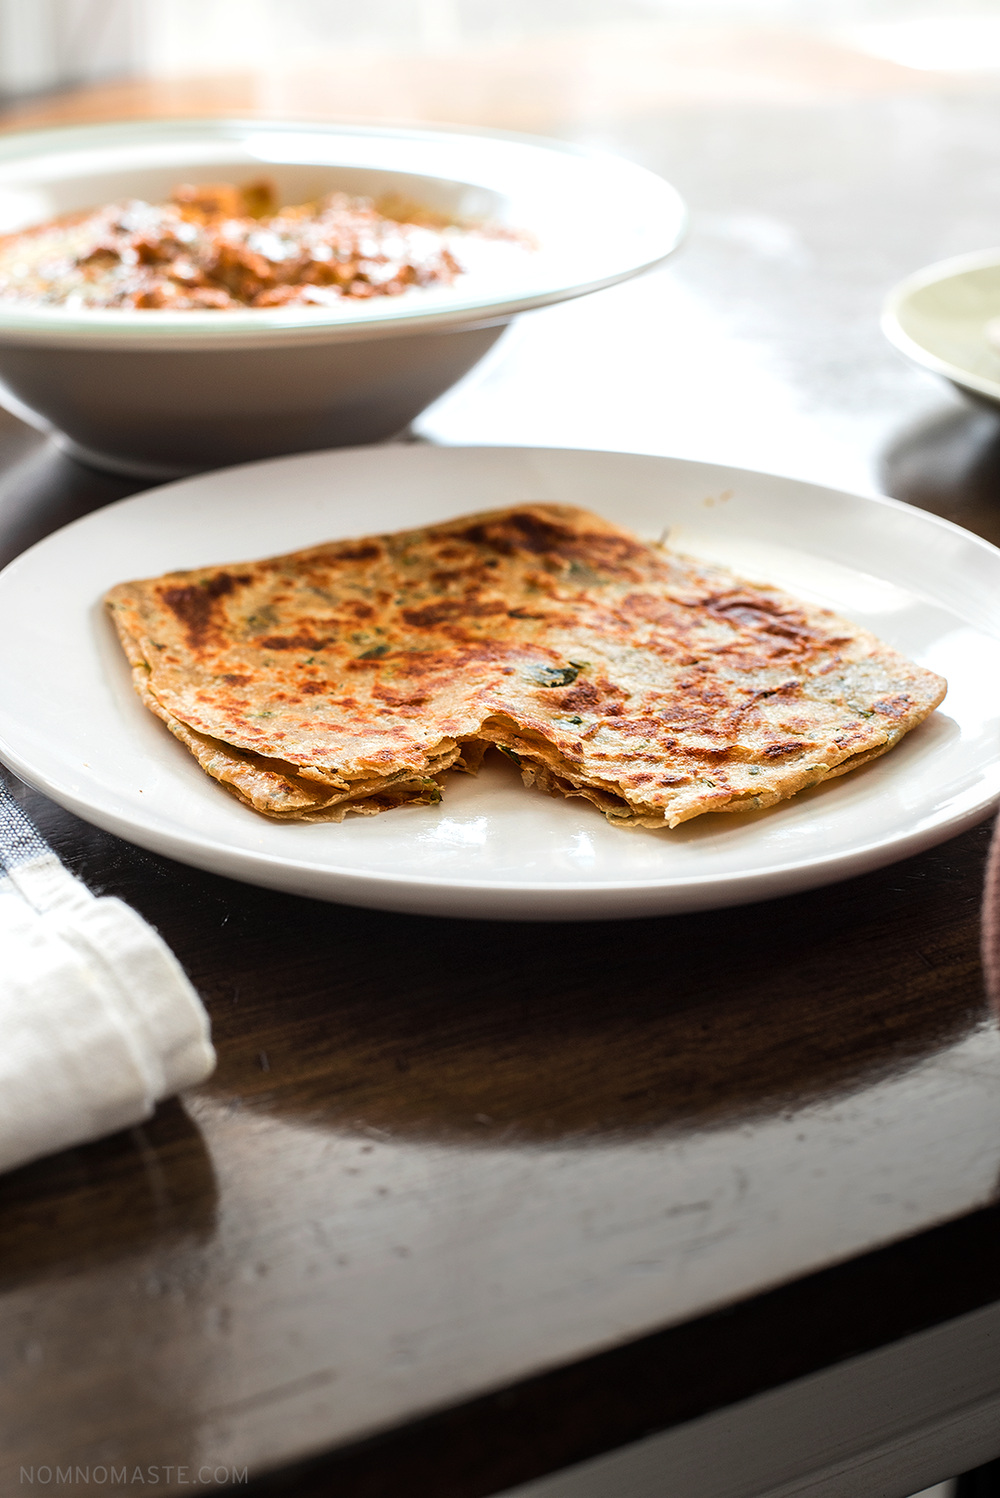 Flaky, rich and delicious—Haldiram Pudina Paratha